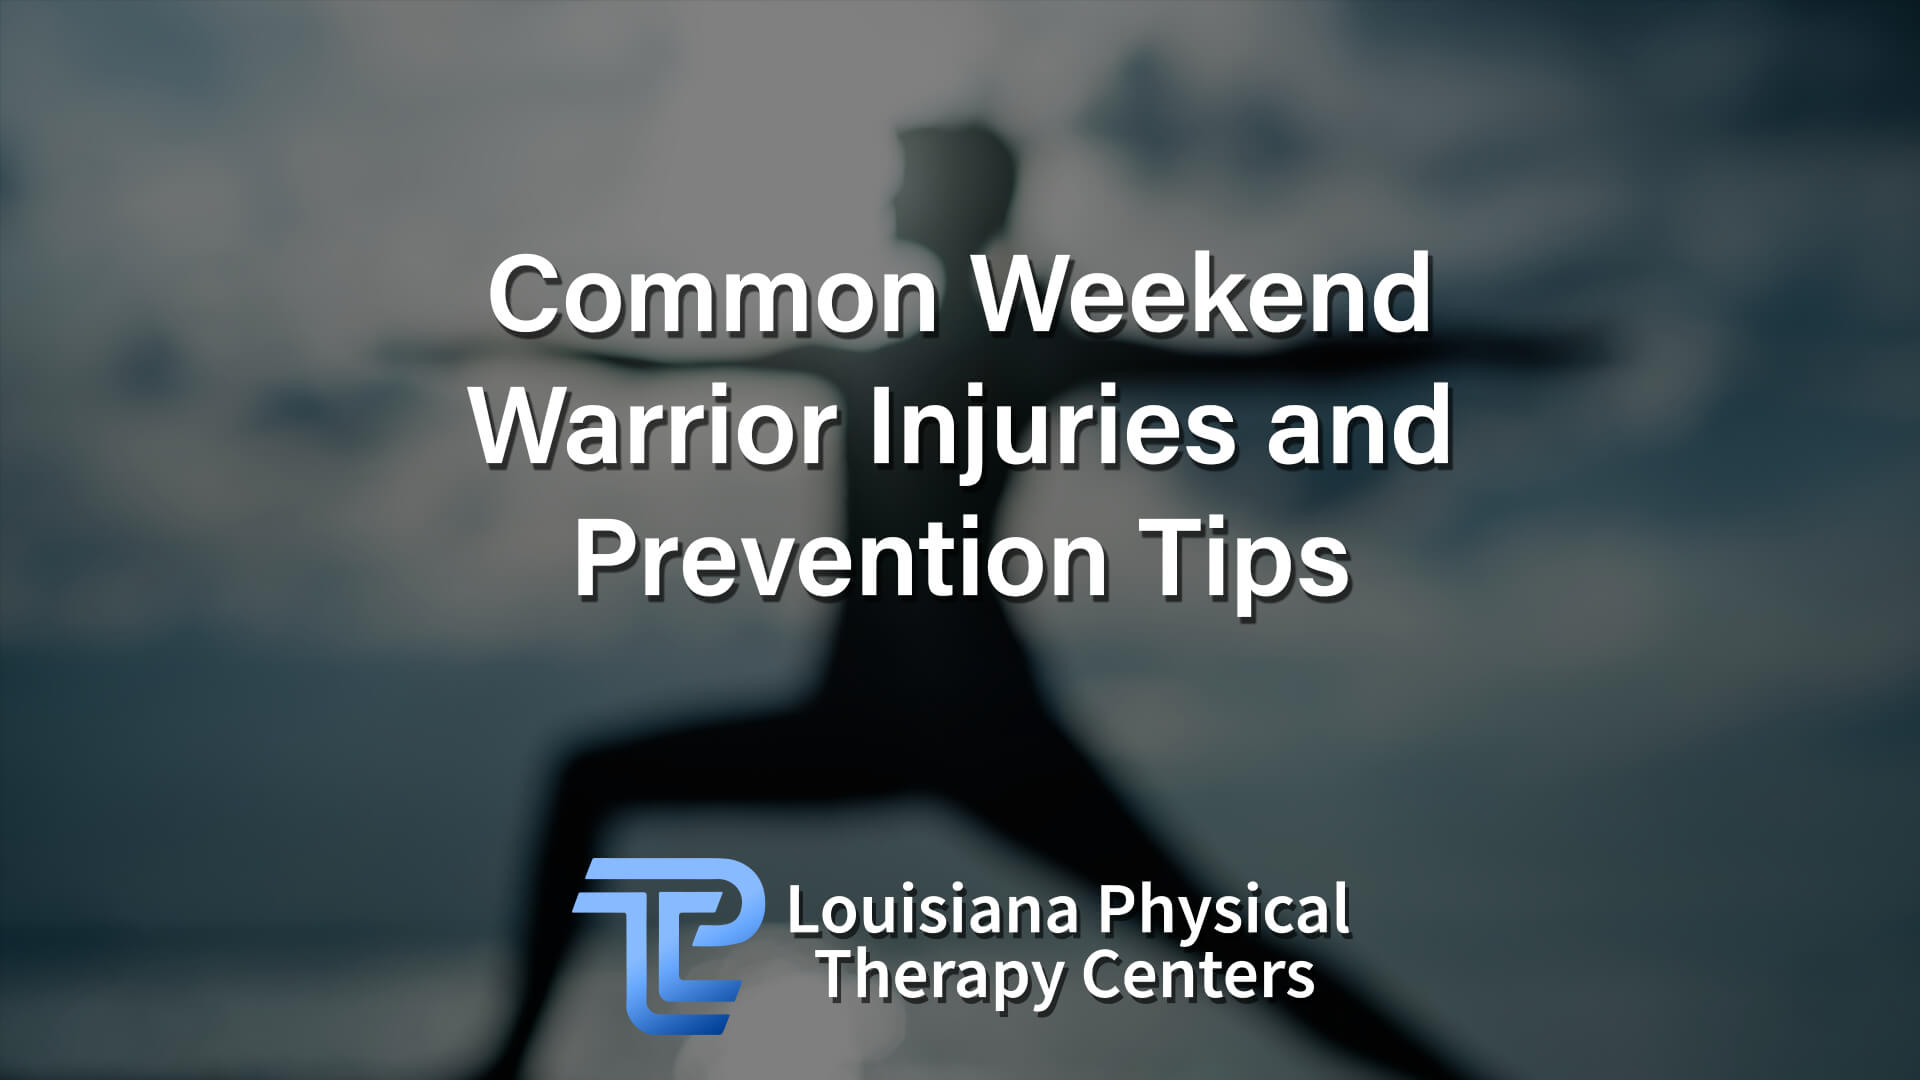 Common Weekend Warrior Injuries and Prevention Tips